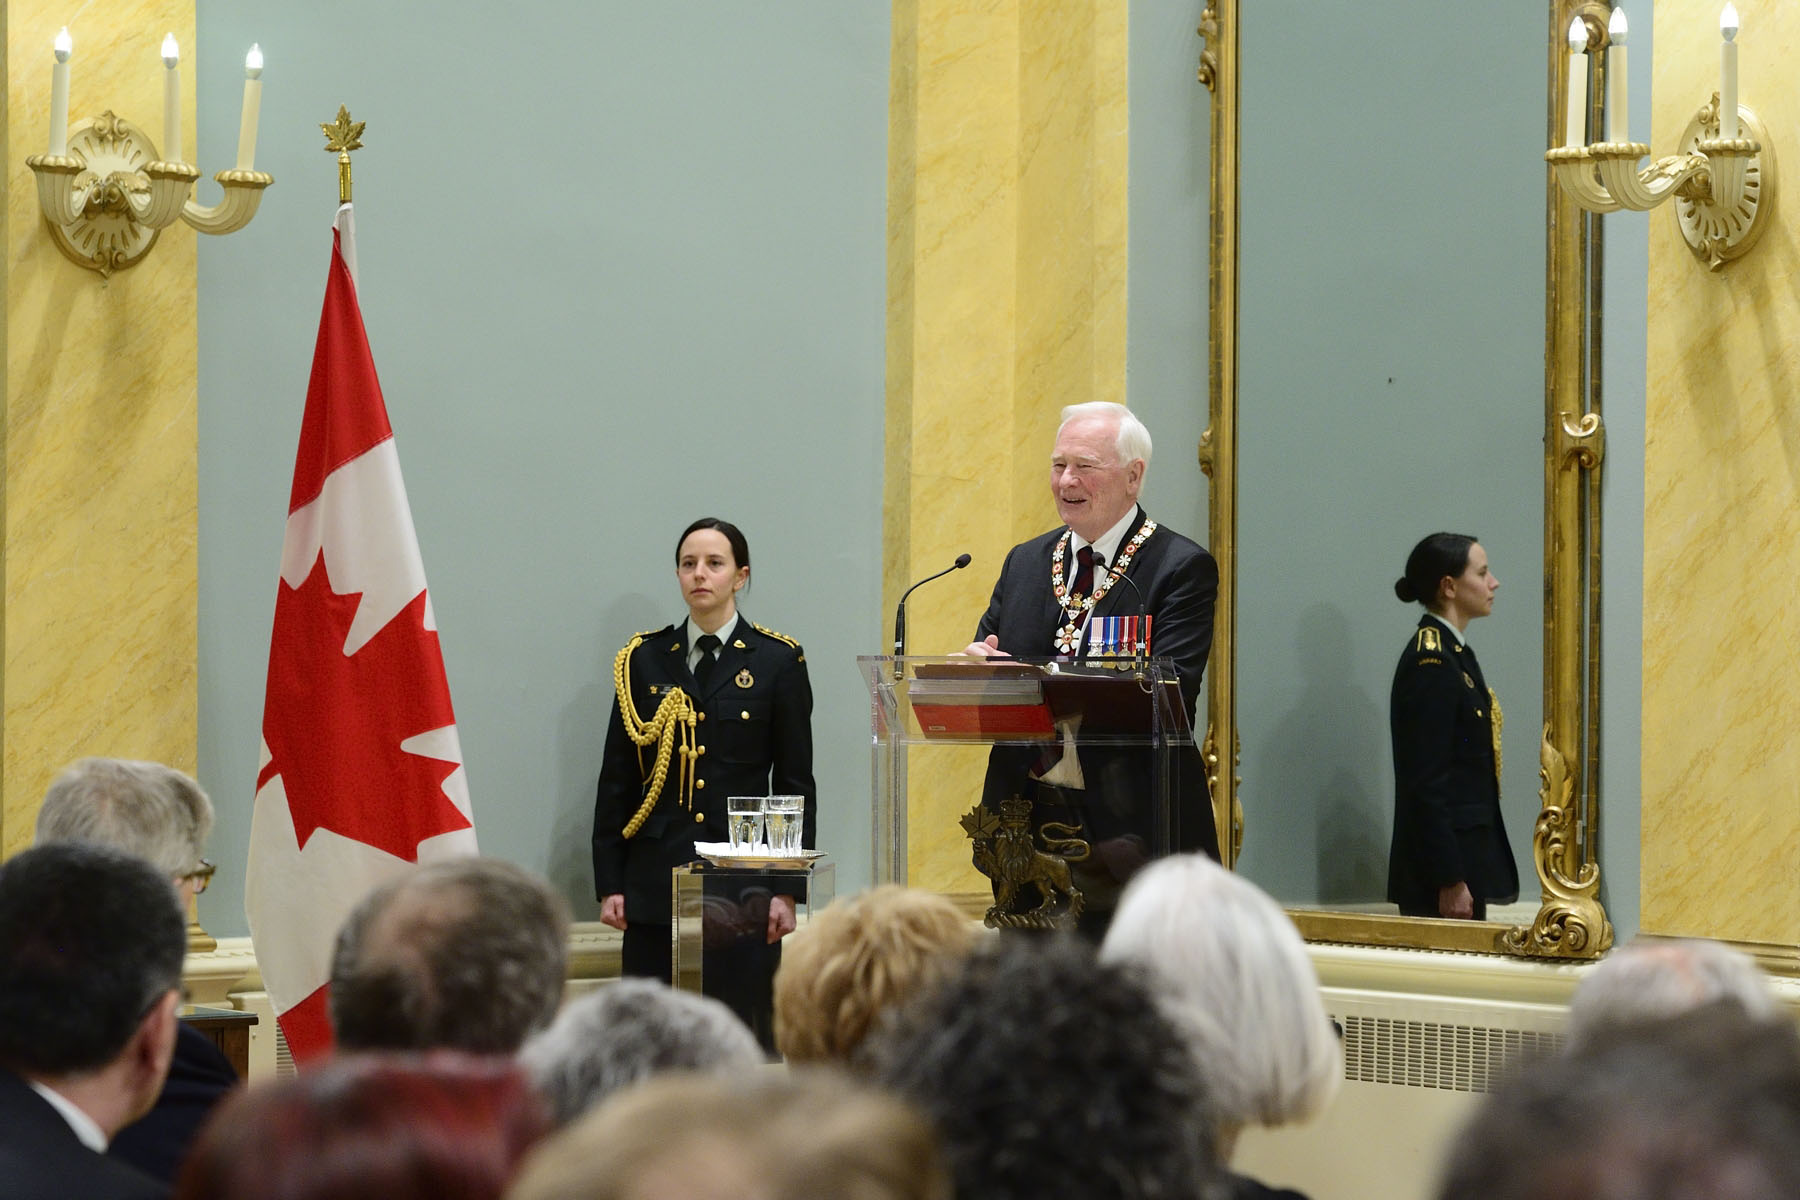 """The variety of your work is remarkable, but you share a common dedication to the individual, the specific, the particular challenge,"" said the Governor General. ""You see the big picture, but you never lose sight of the all-important details. You know that's where progress is achieved and felt. You have all worked so very hard, with your eyes fixed firmly on the future, and the sum of your visions has helped us build a better Canada."""